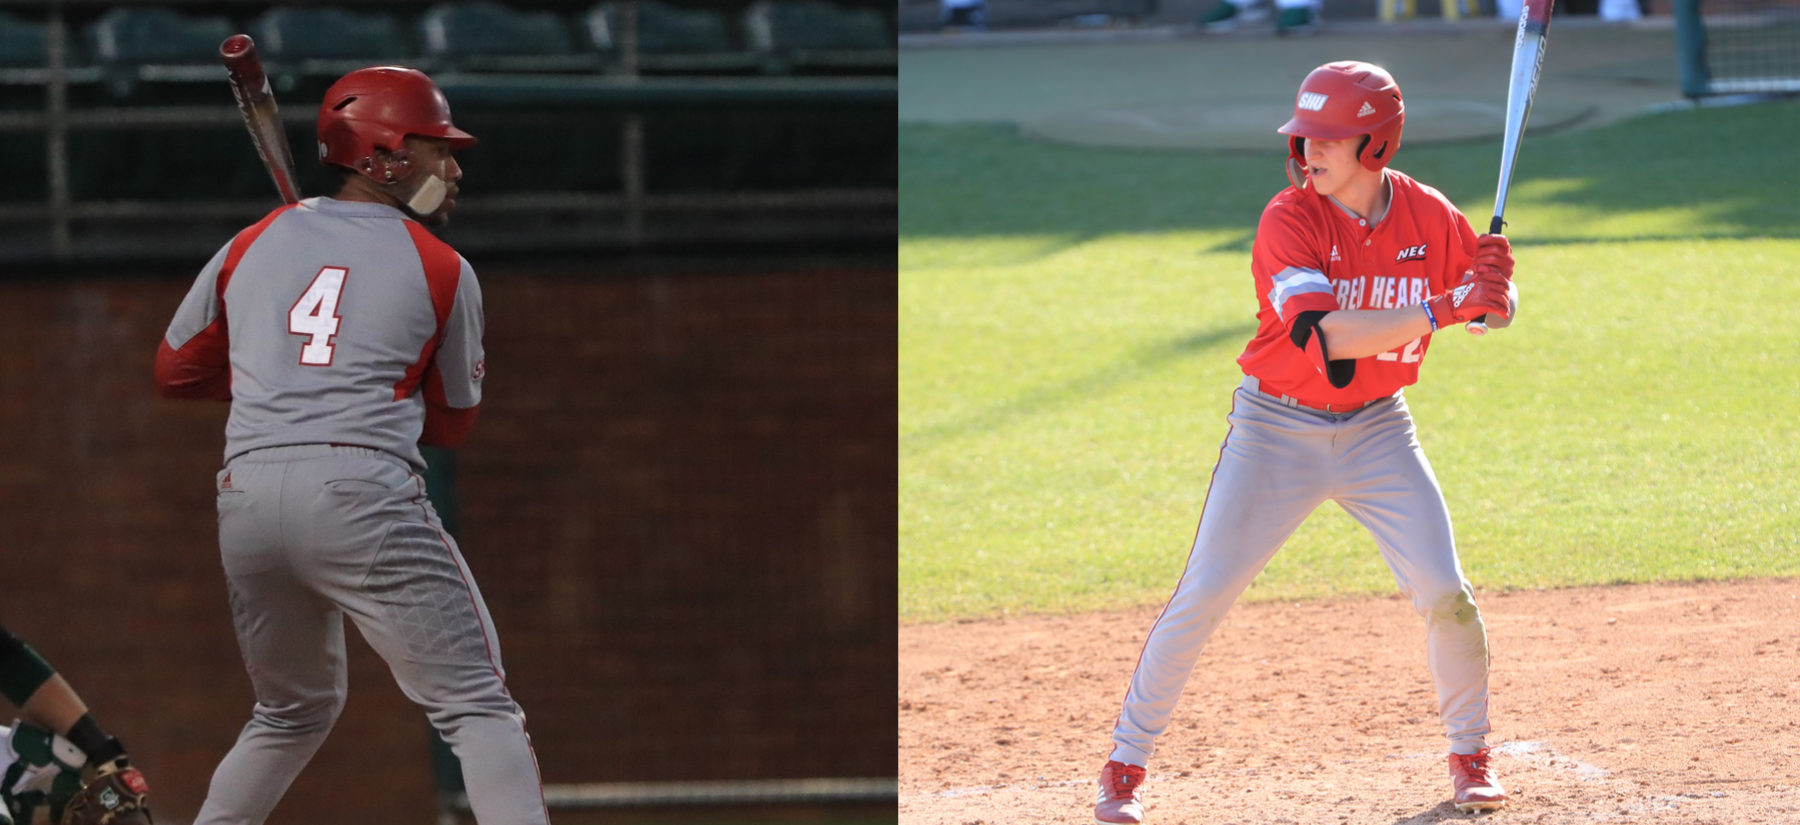 Daubon and Jordan Earn NEC Weekly Honors